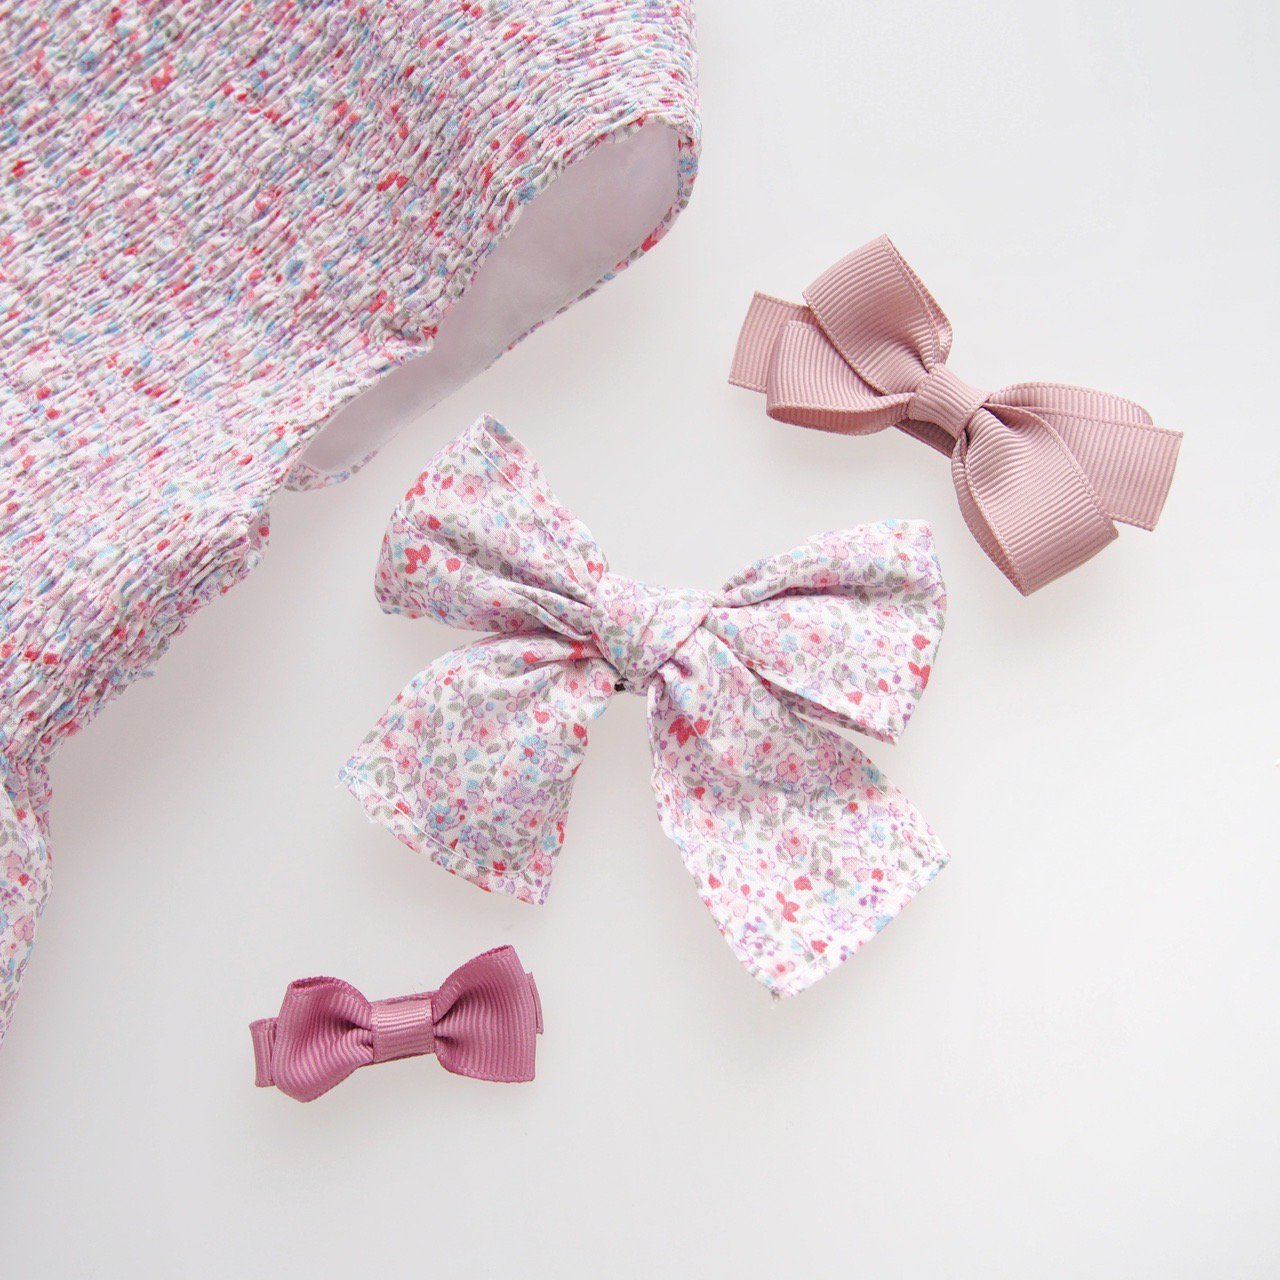 <img class='new_mark_img1' src='https://img.shop-pro.jp/img/new/icons1.gif' style='border:none;display:inline;margin:0px;padding:0px;width:auto;' />Pi & Pa - Hairbow (Floral/ Multi Gingham)